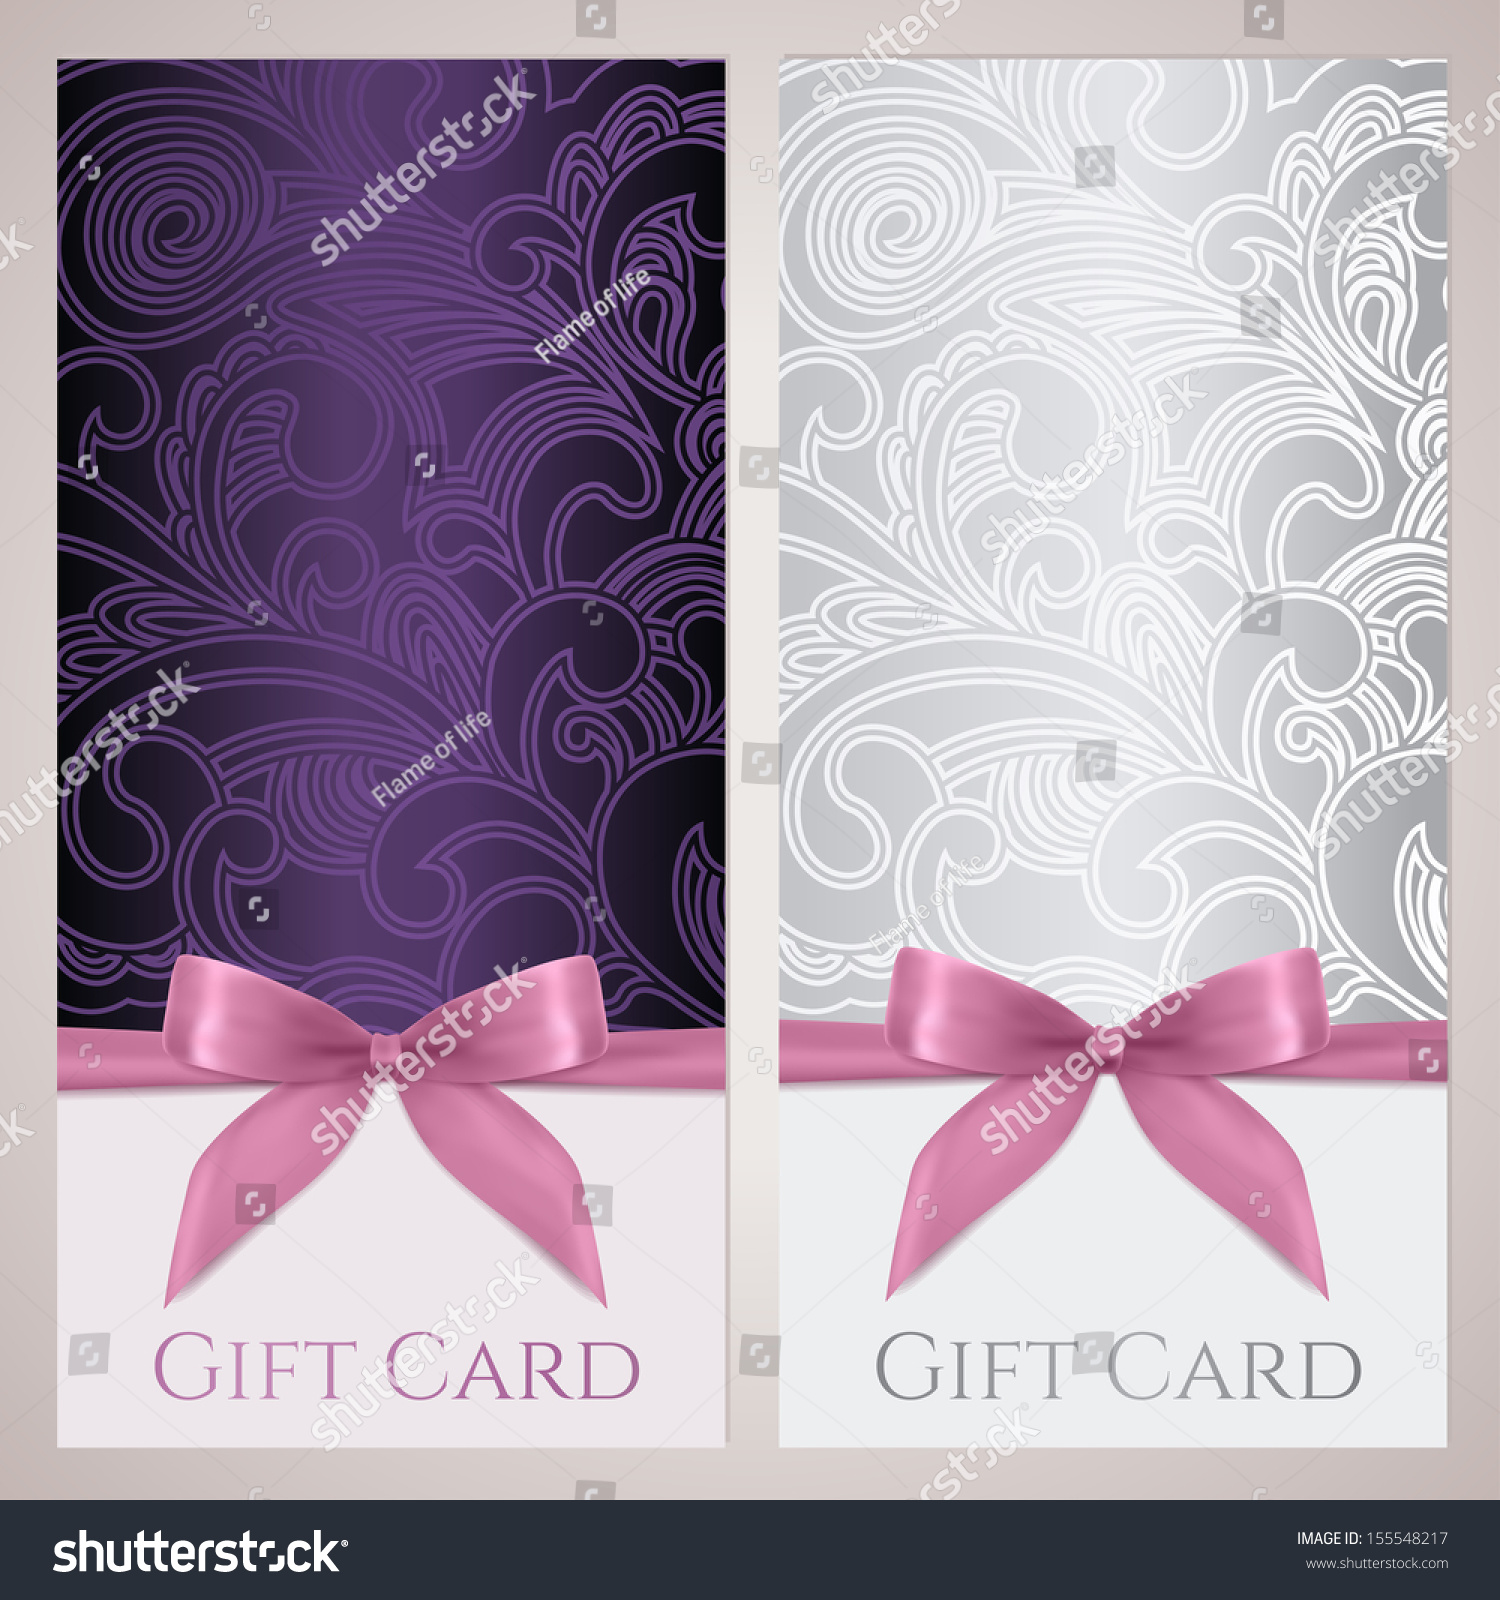 voucher gift certificate coupon gift card stock illustration voucher gift certificate coupon gift card tag template gift bow